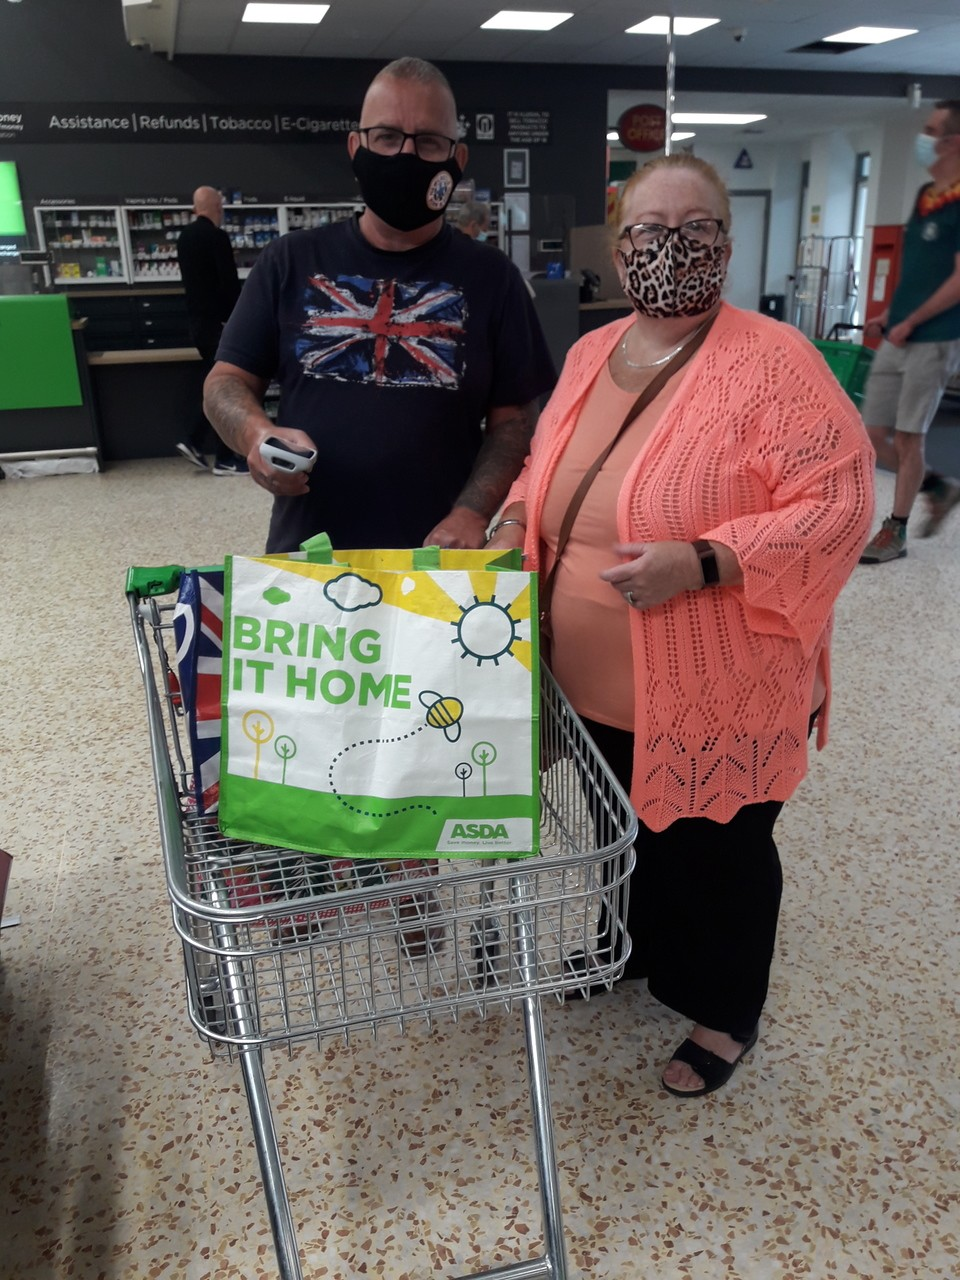 Makeover proving popular | Asda Cramlington